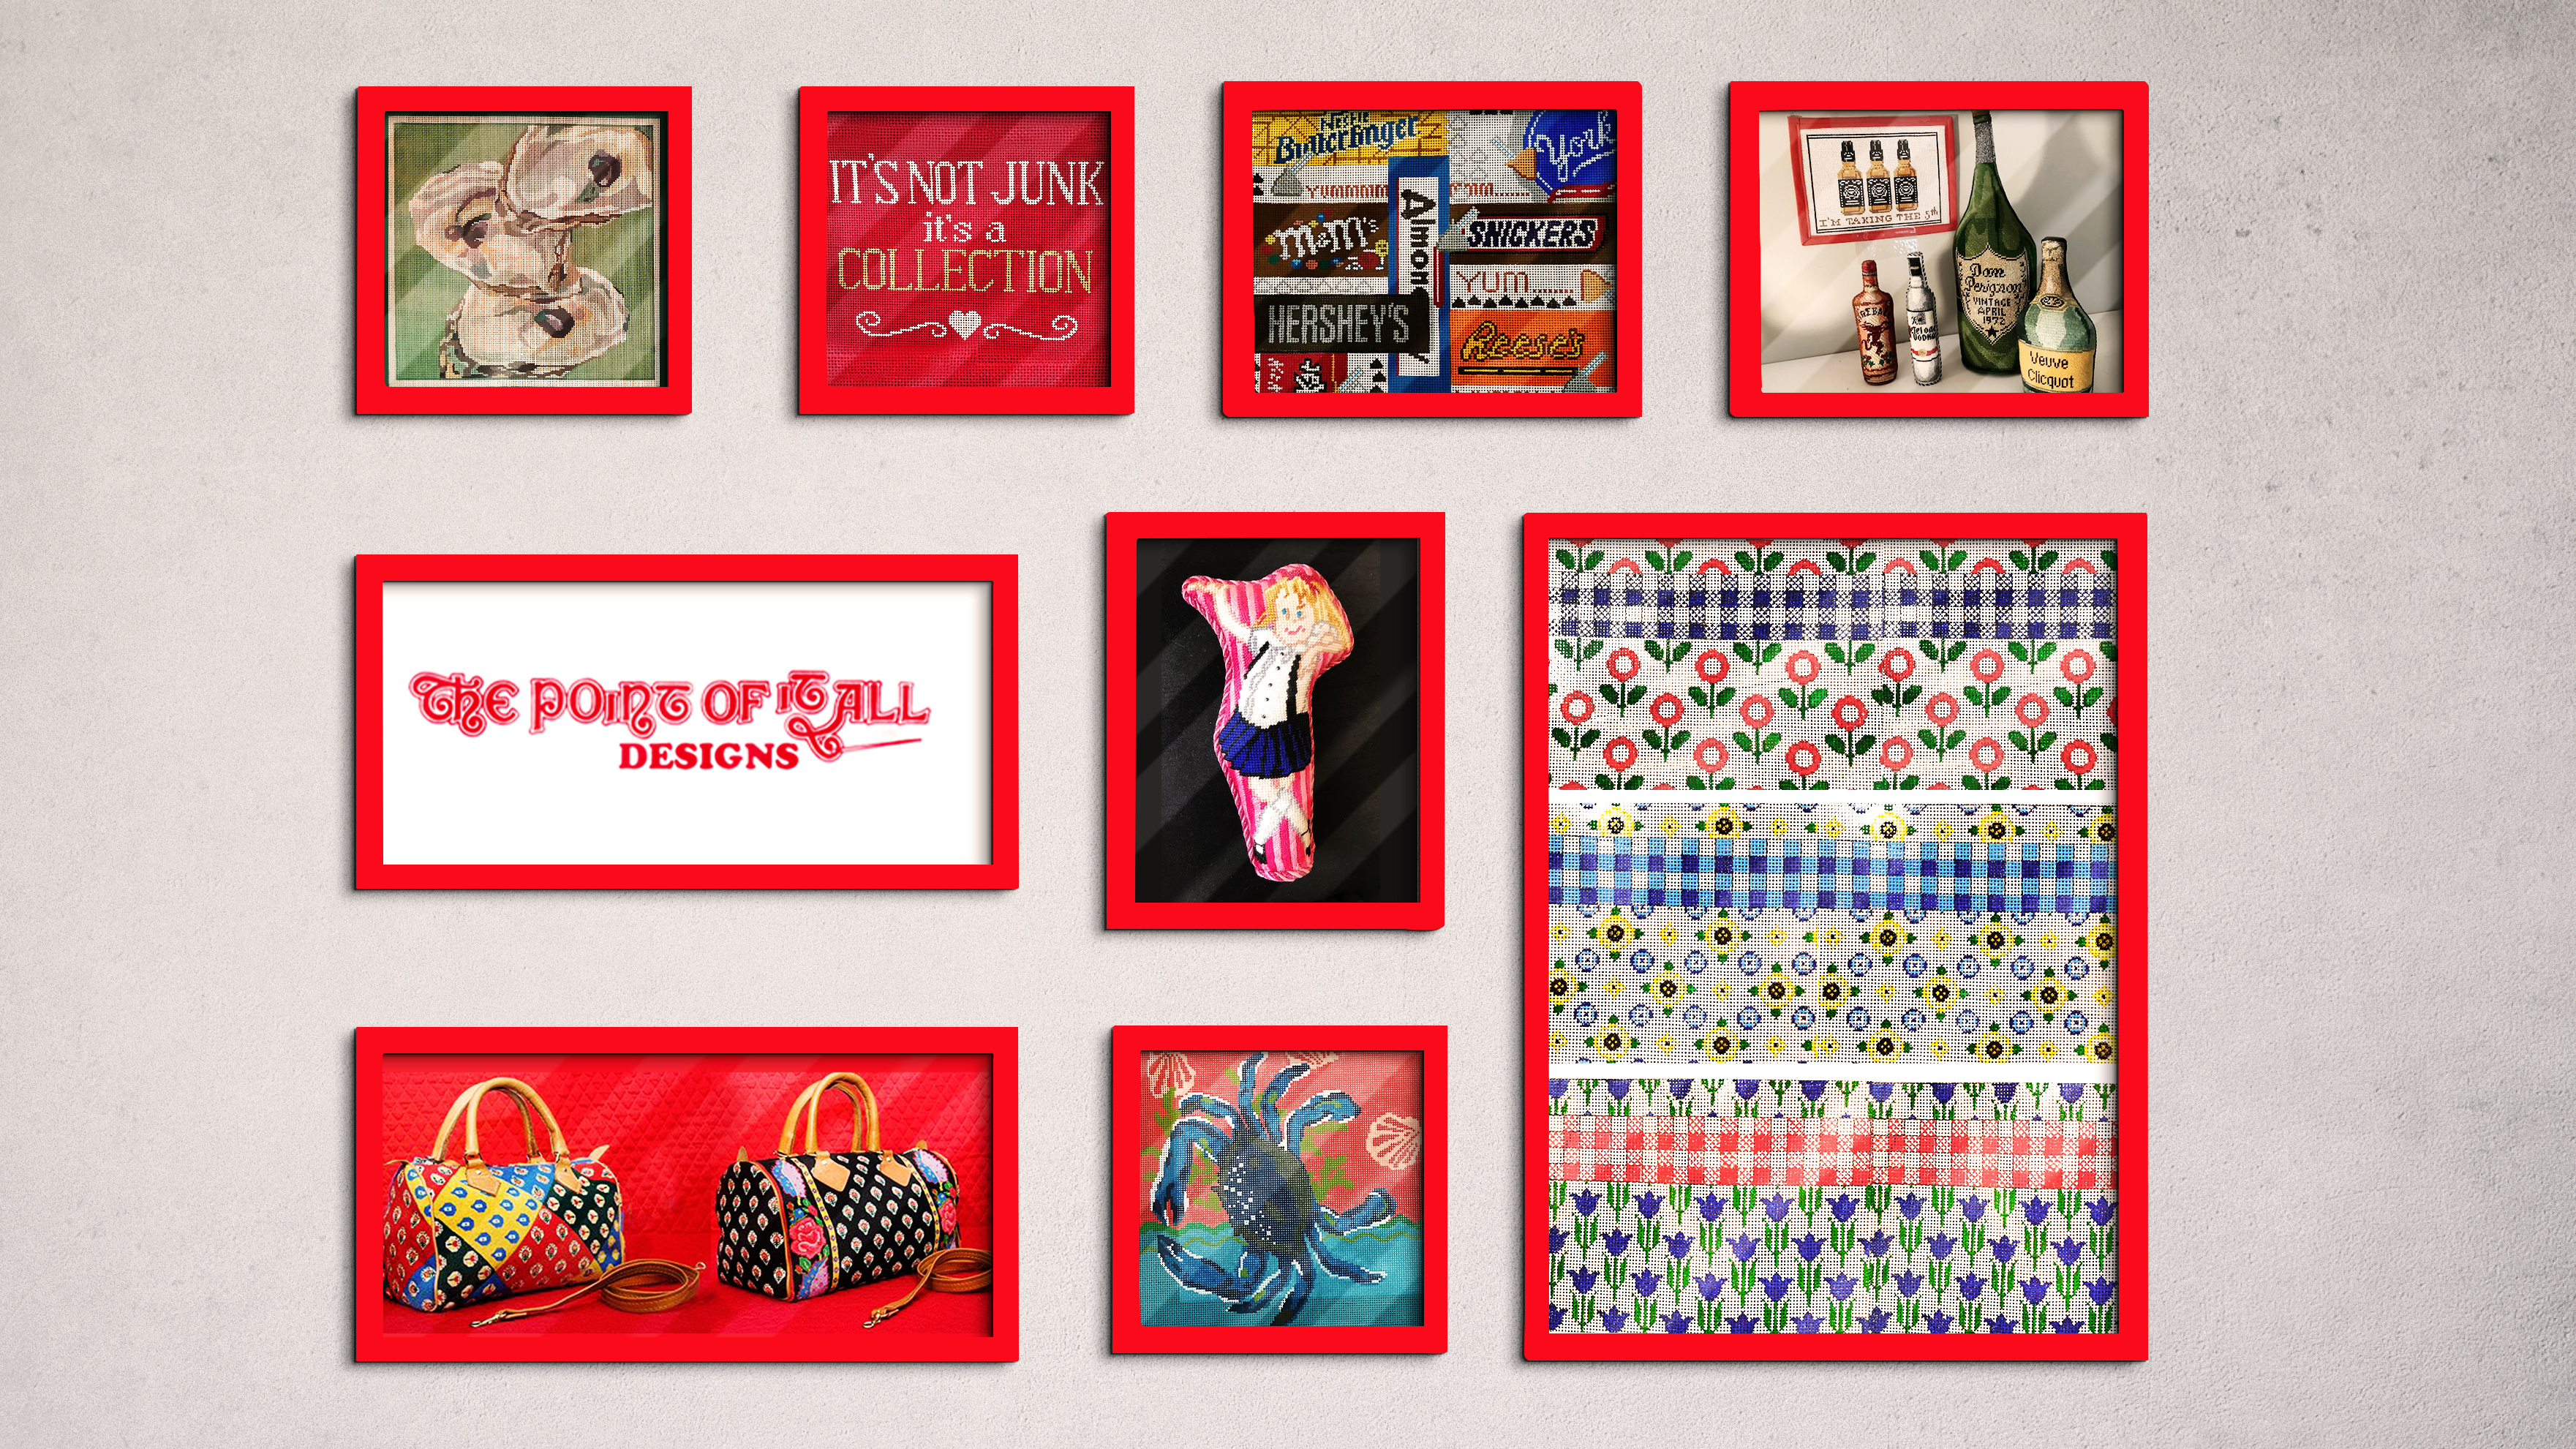 Needle Point Canvas Gallery | The Point of It All Designs